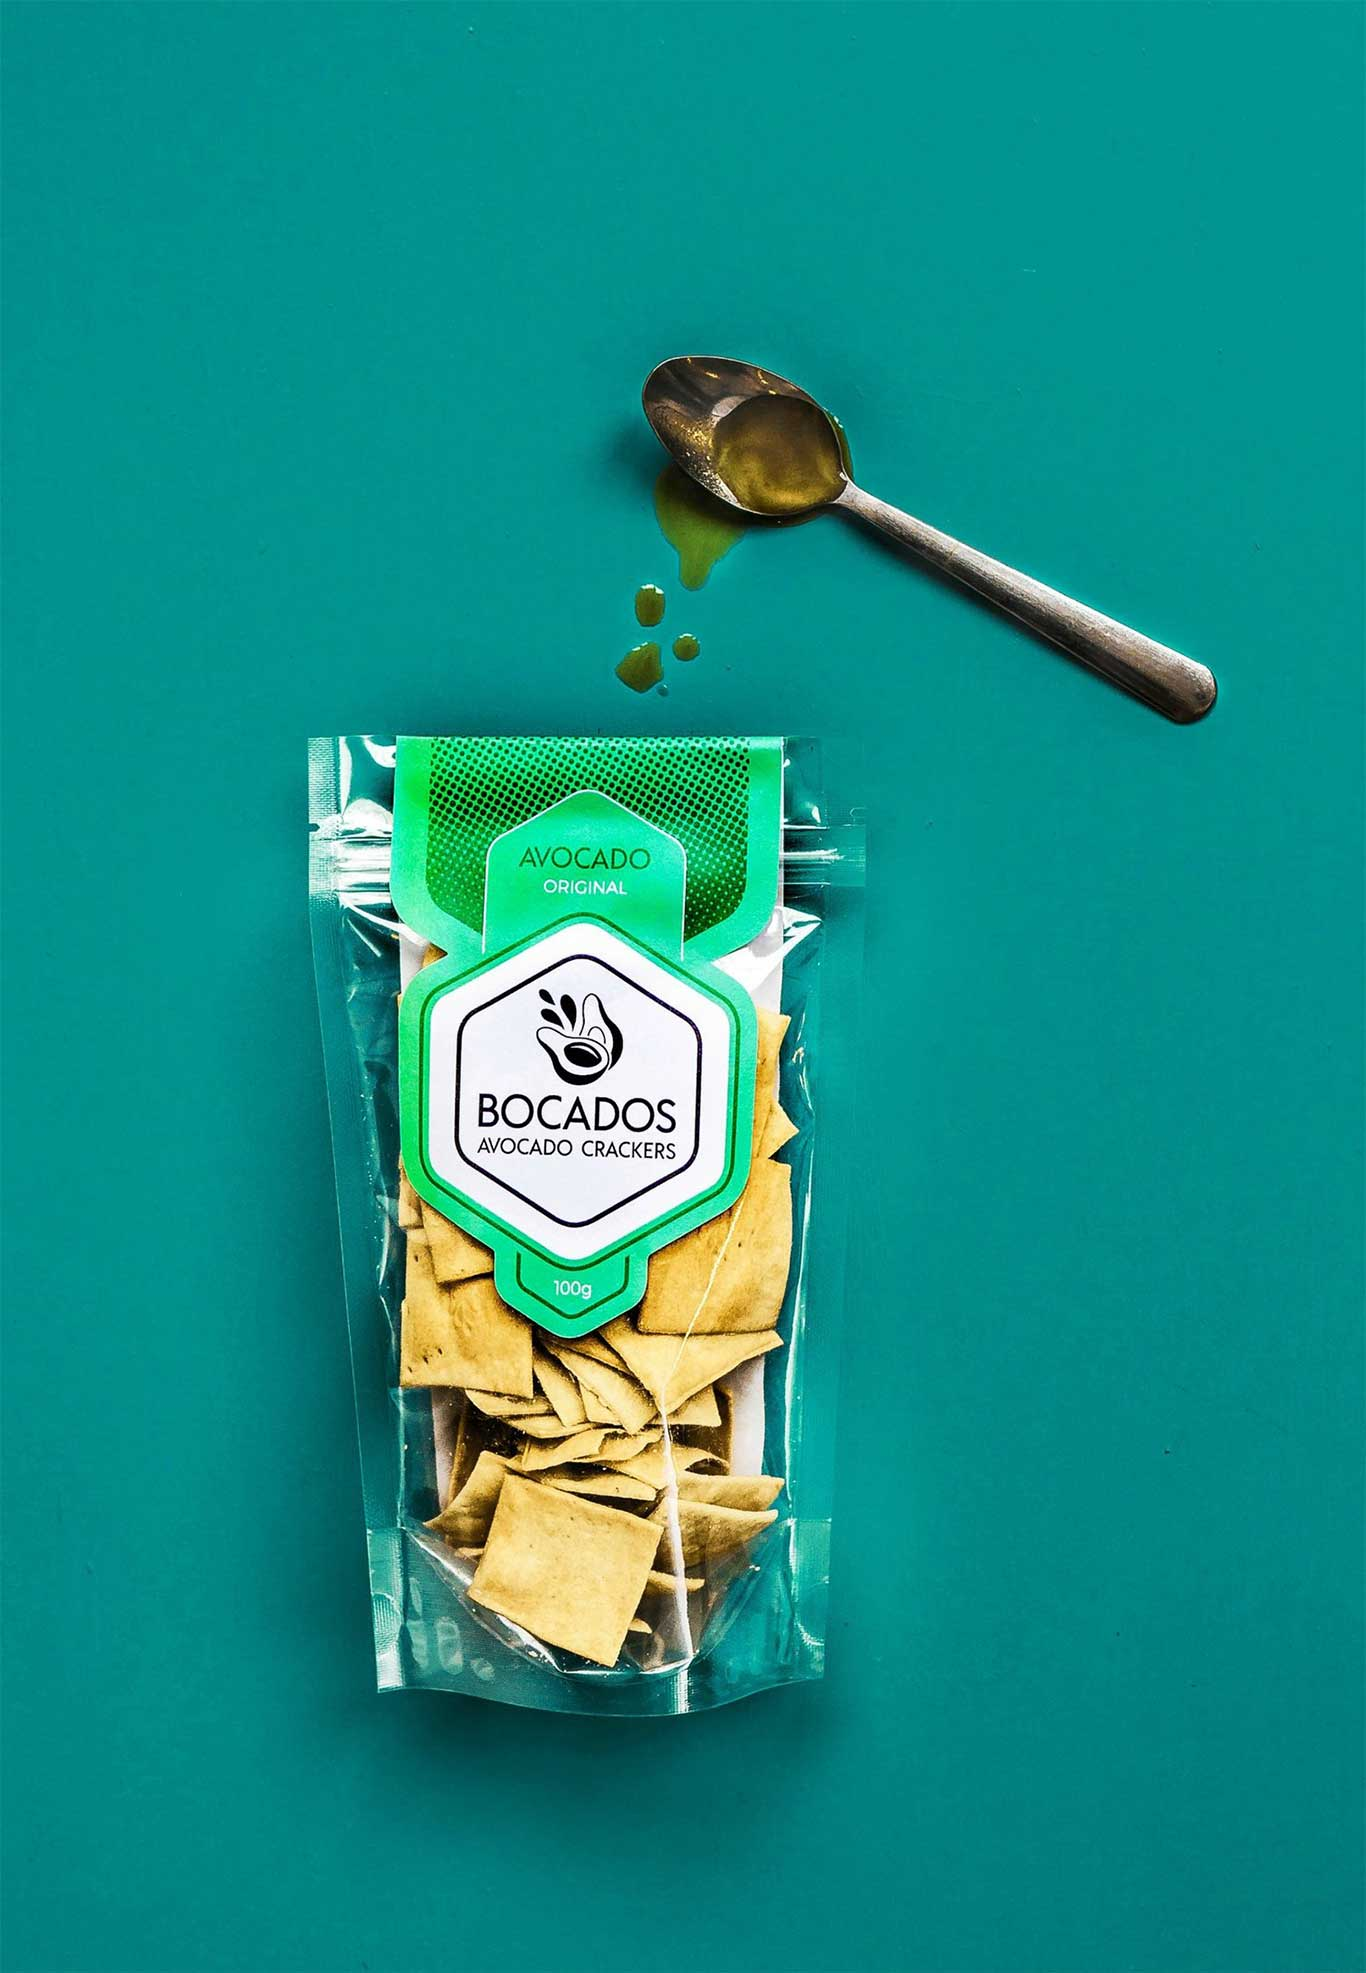 bocados vegan original crackers packaging design